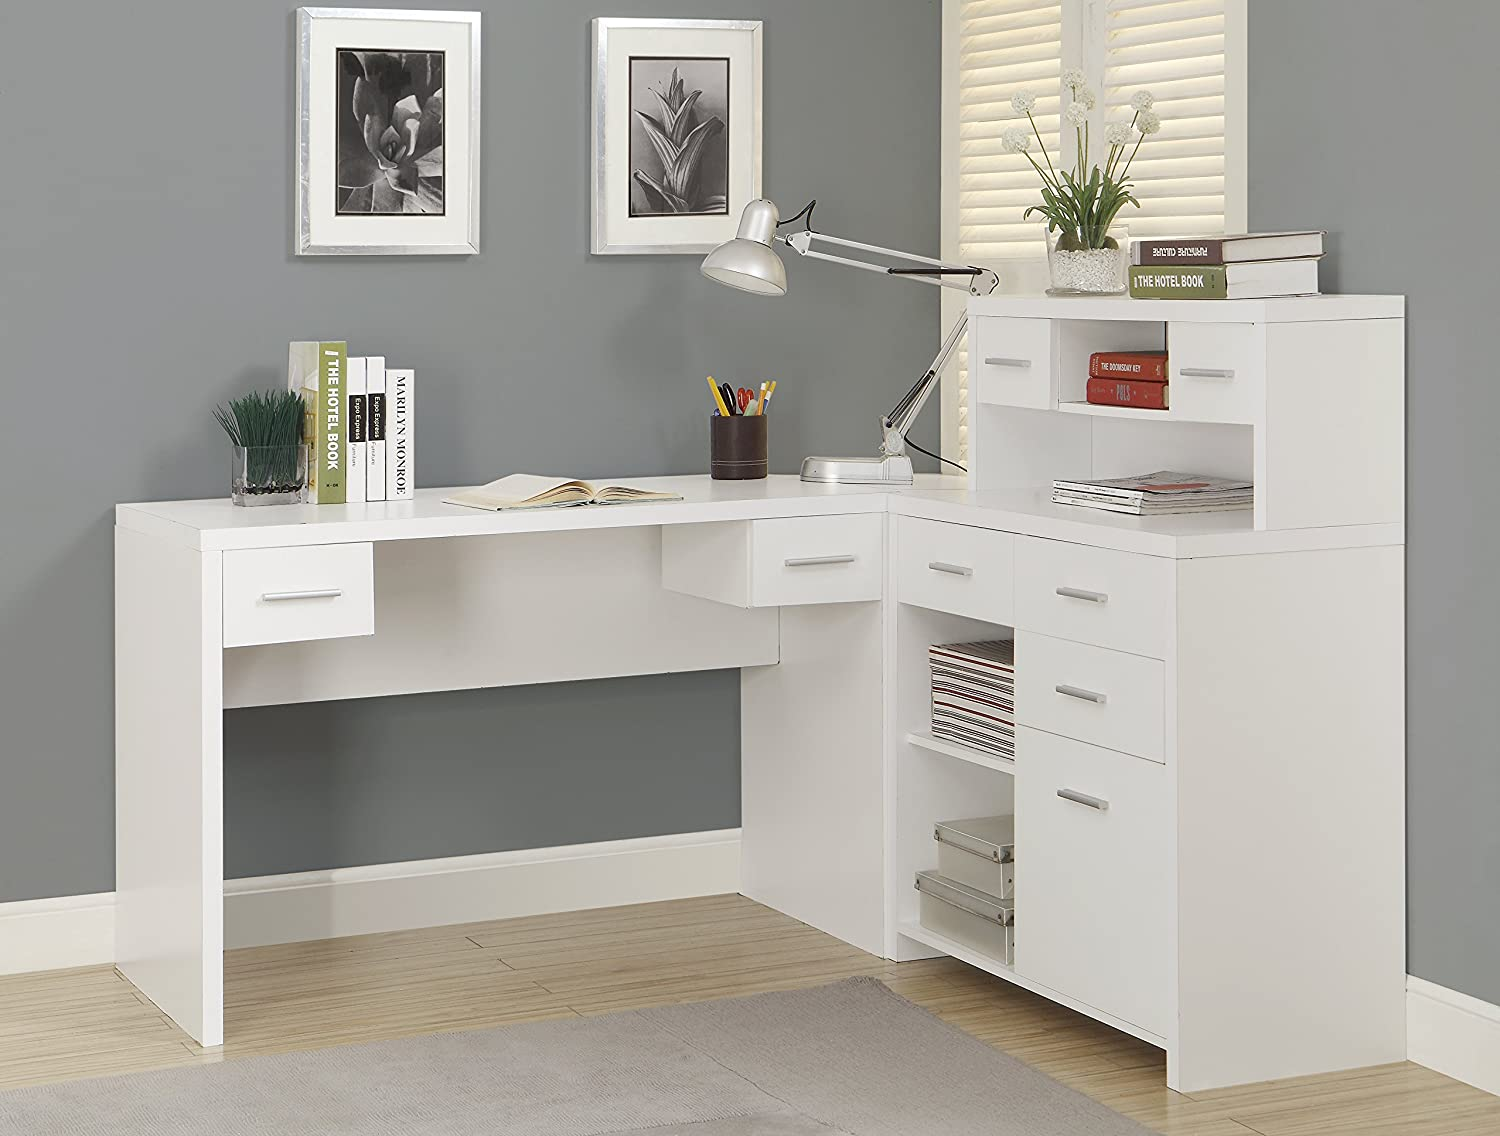 long desks for home office. Amazon.com: Monarch Hollow-Core \ Long Desks For Home Office H